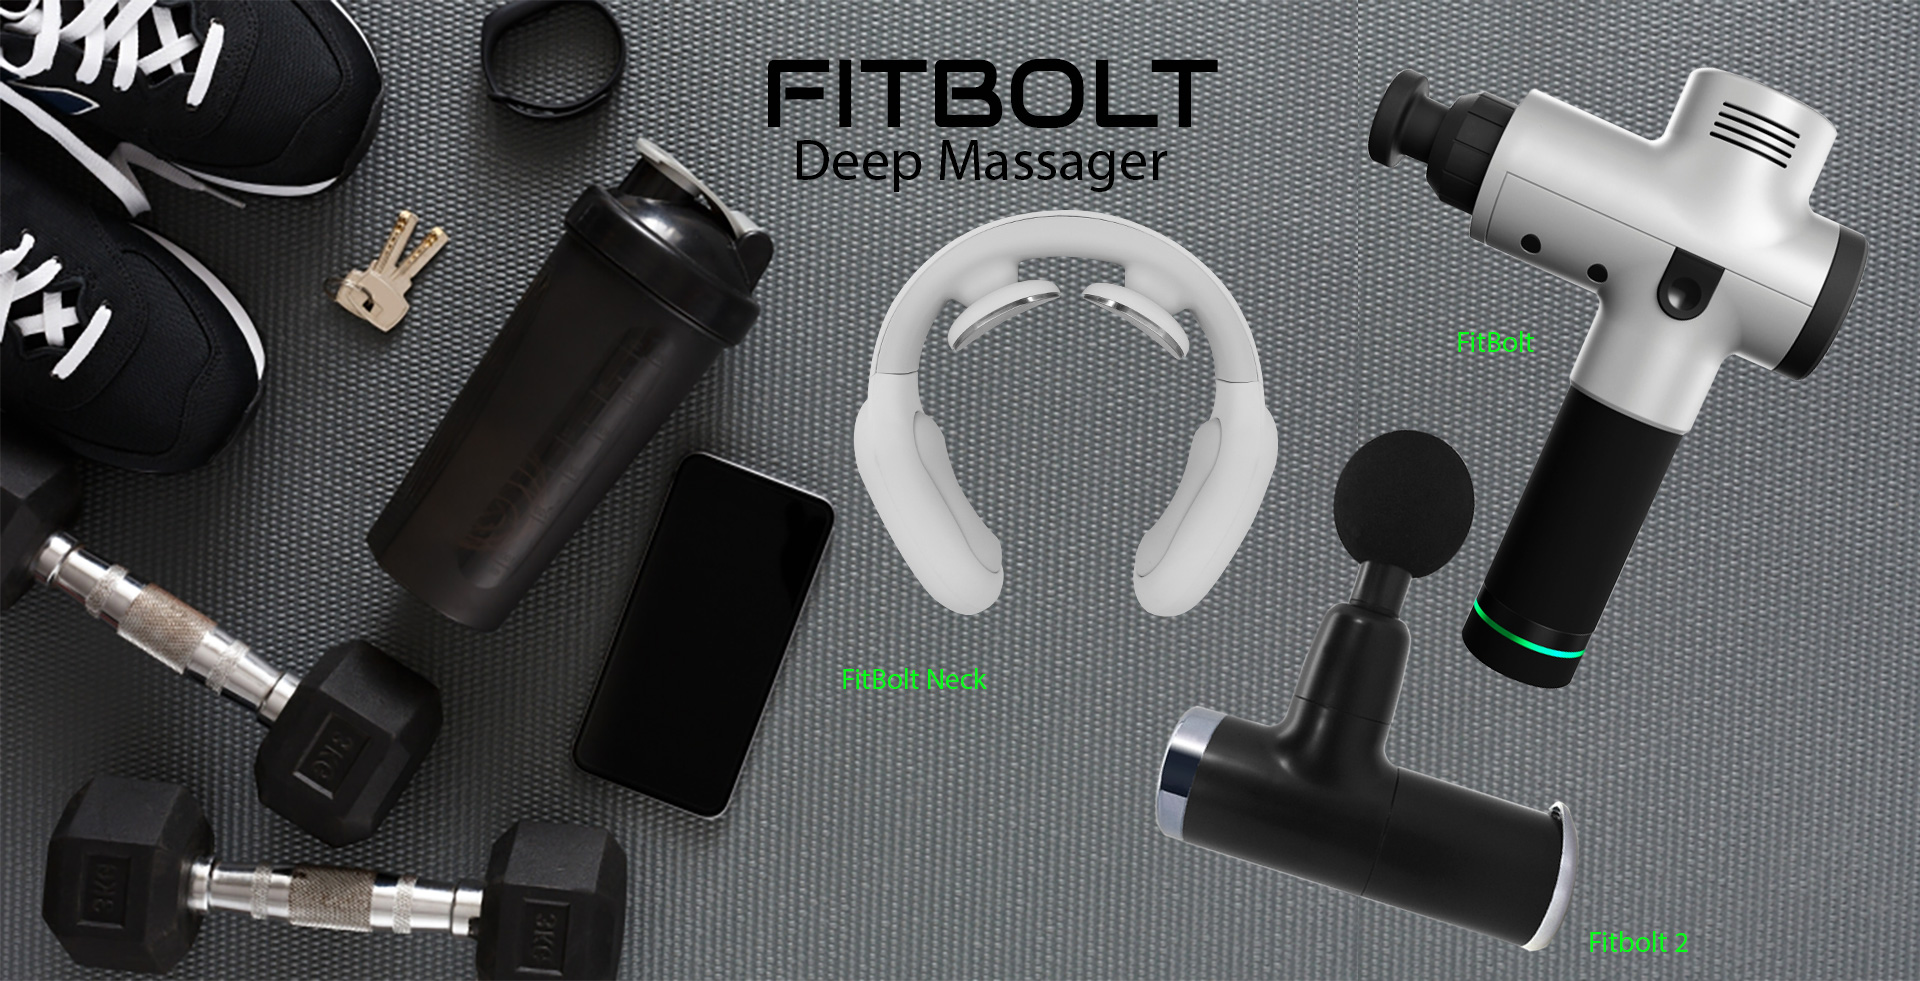 The Massage Therapy Gun and Device for Sore Muscles and Muscle Recovery.